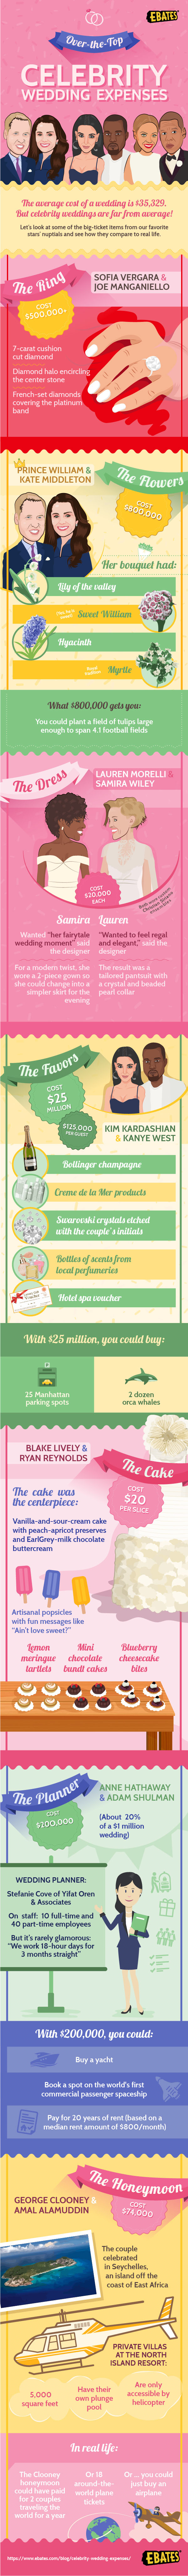 Over-the-Top Celebrity Wedding Expenses